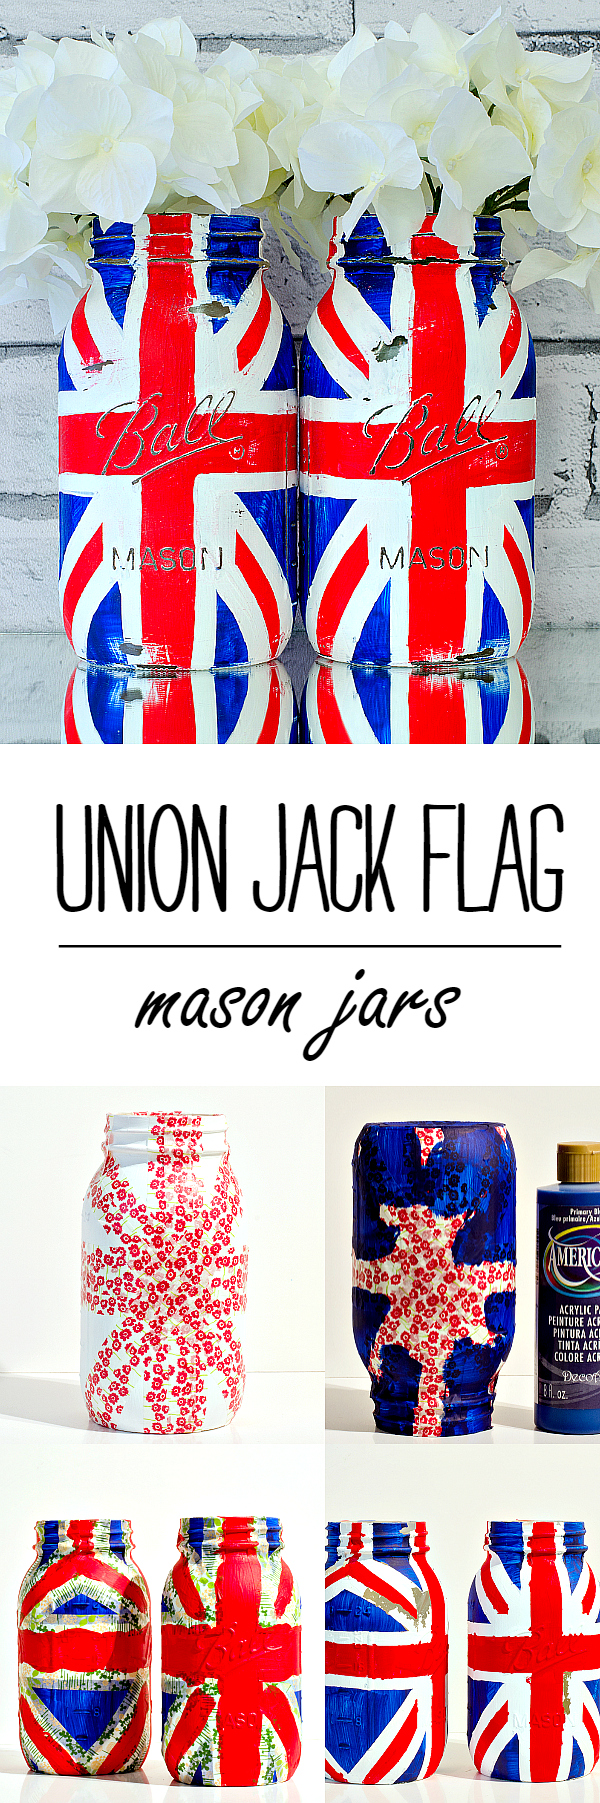 Union Jack Flag Craft Ideas - Mason Jar Union Jack Flag